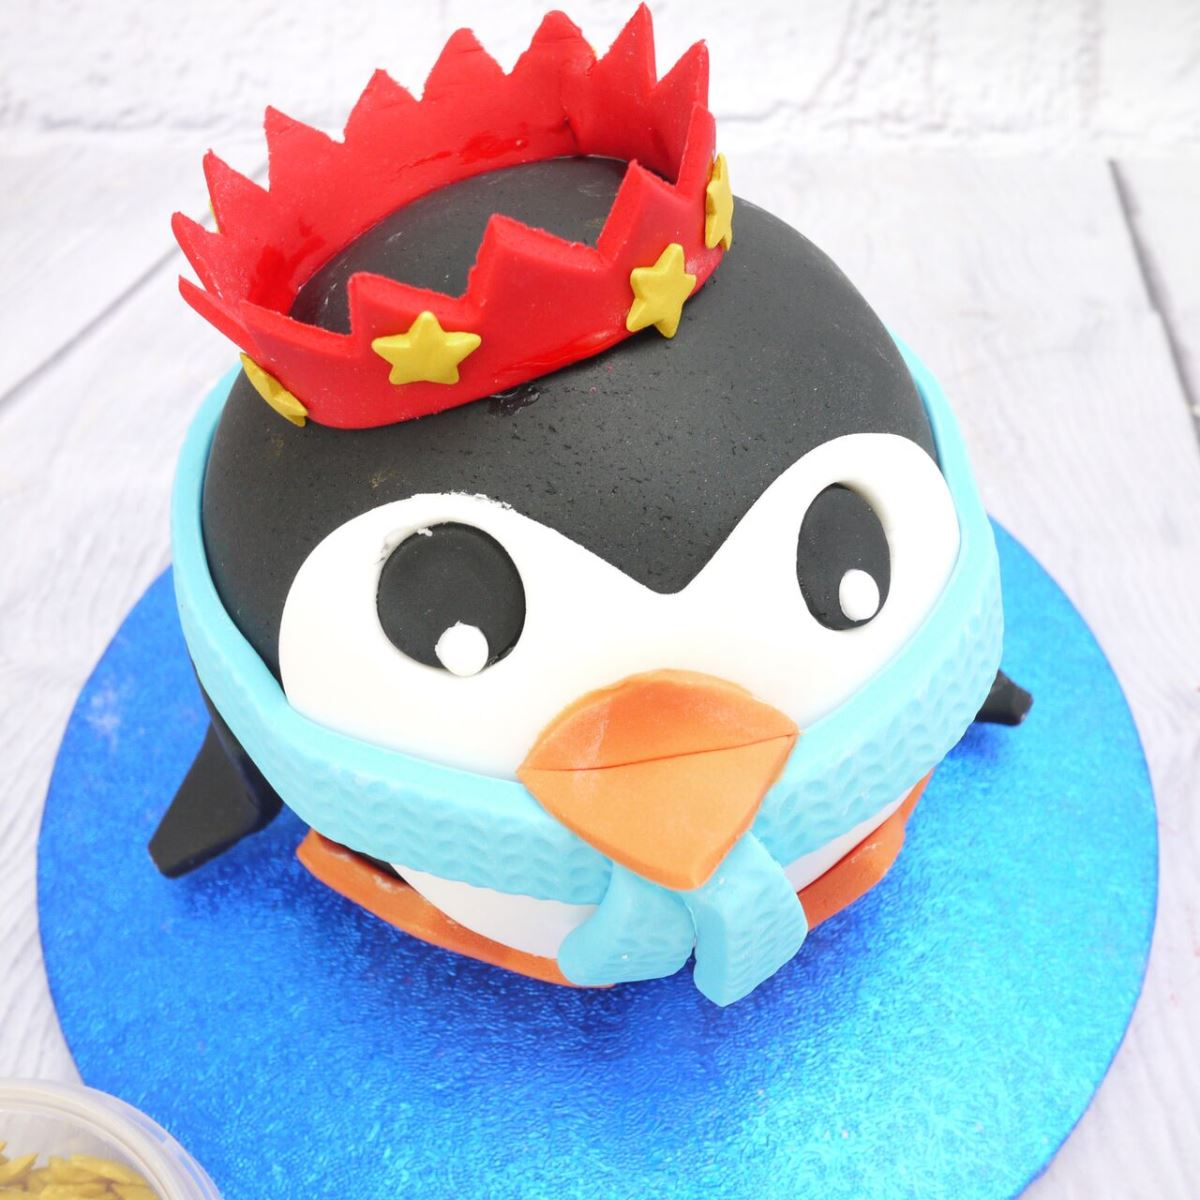 Penguin cake step 6b